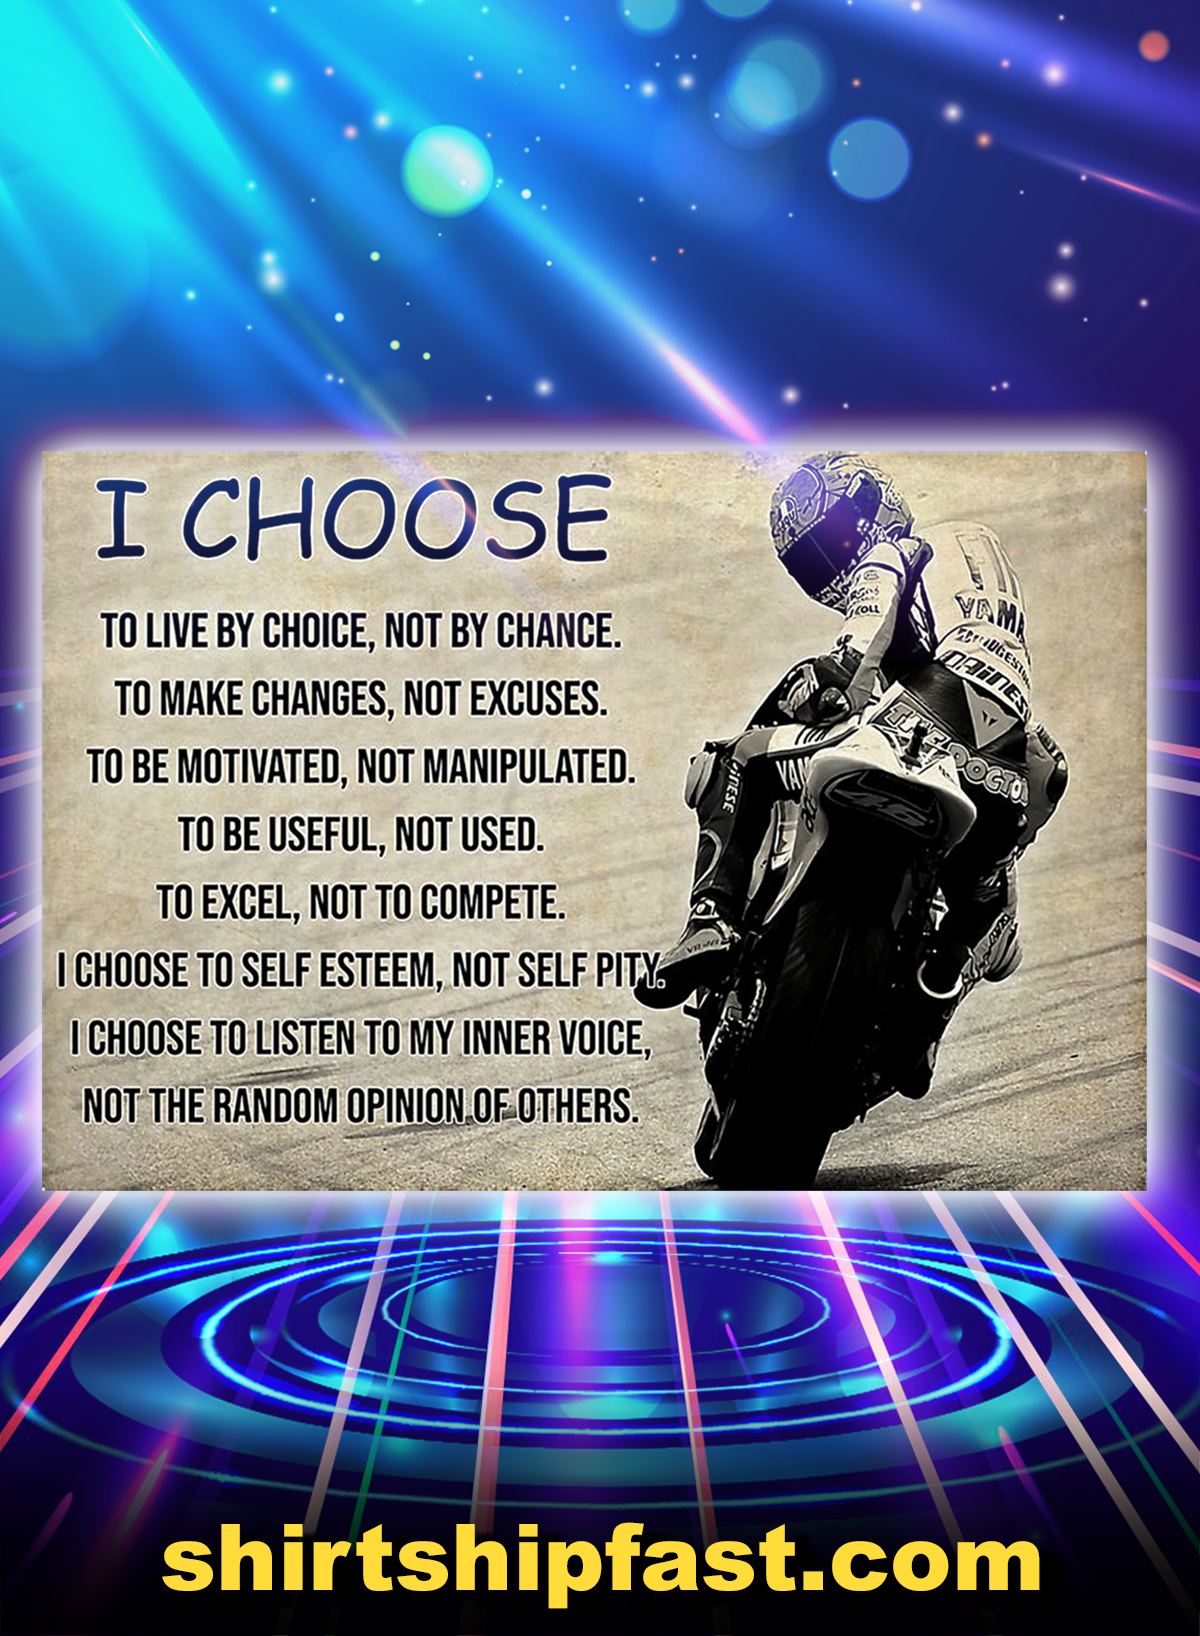 Motorcycle i choose to live by choice poster - A1